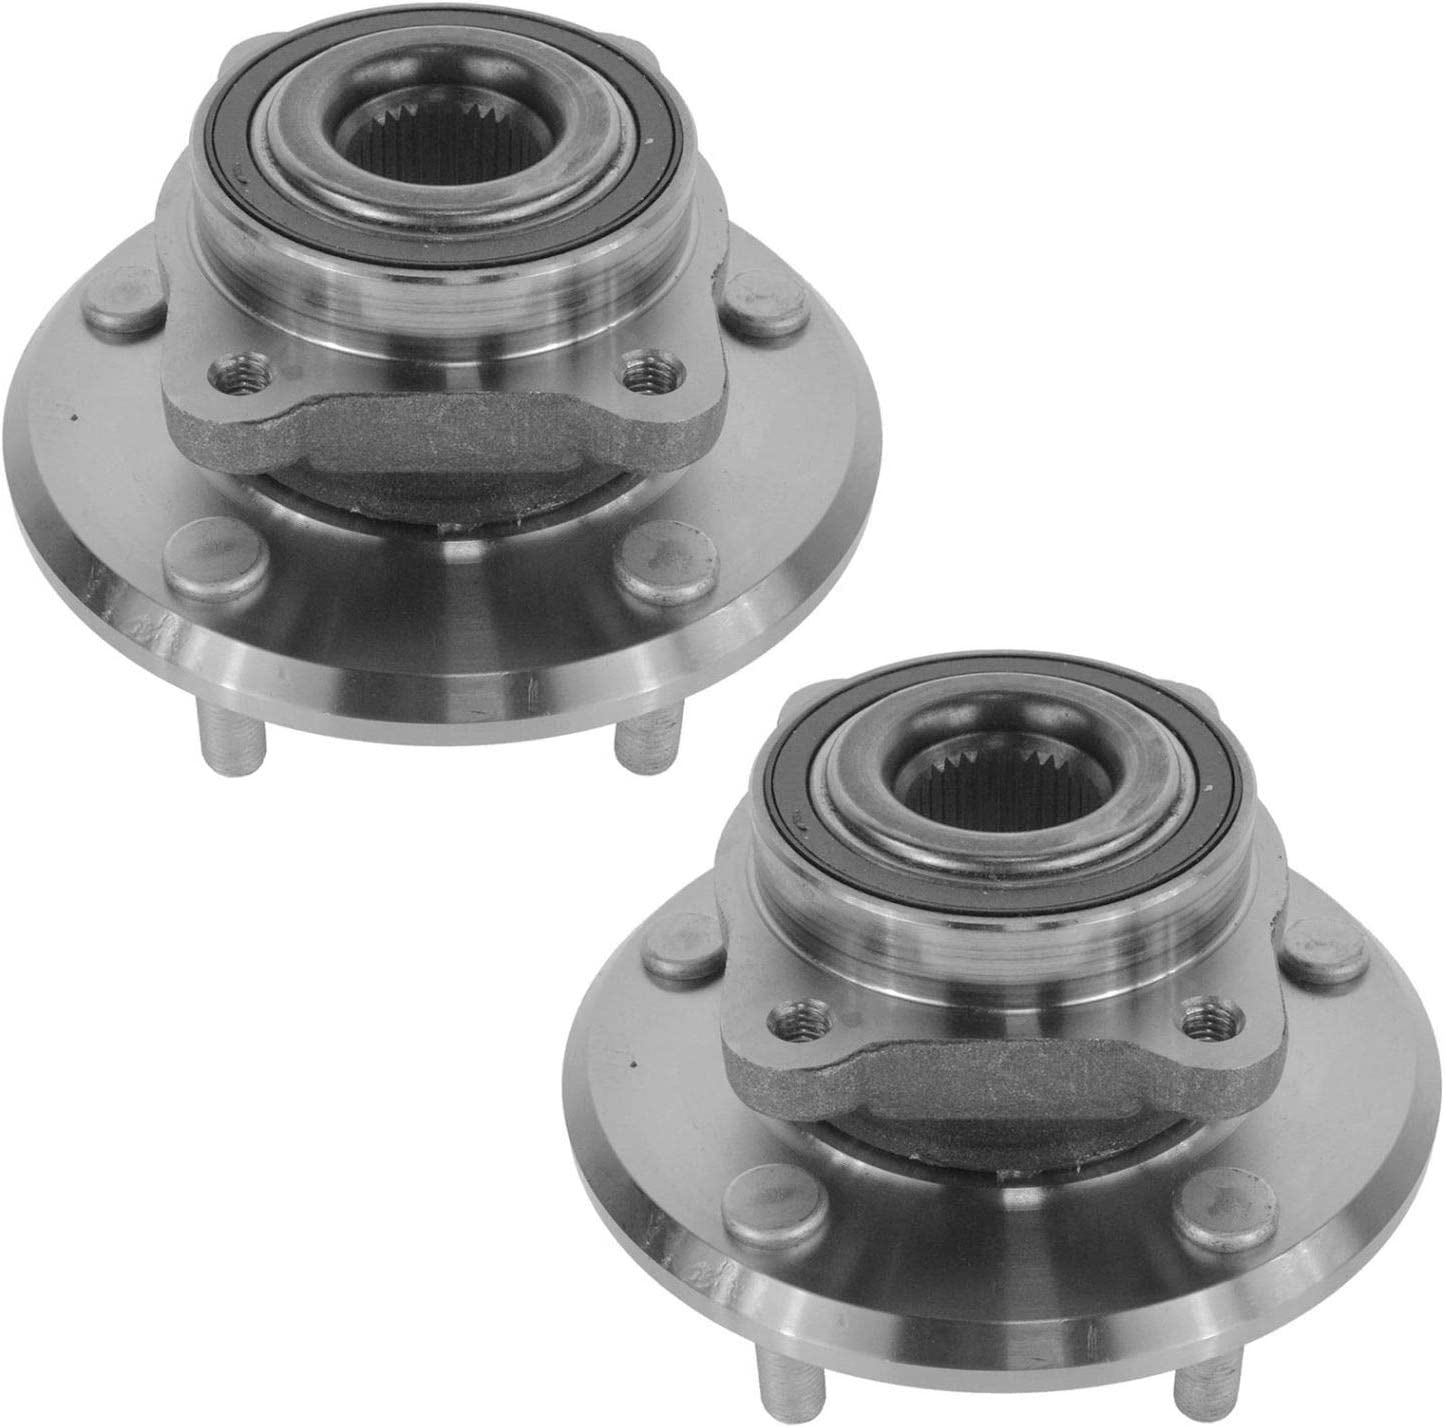 Front Wheel Bearing /& Hub Assembly LH RH Set of 2 Pair for Ford F150 4x4 7 Lug